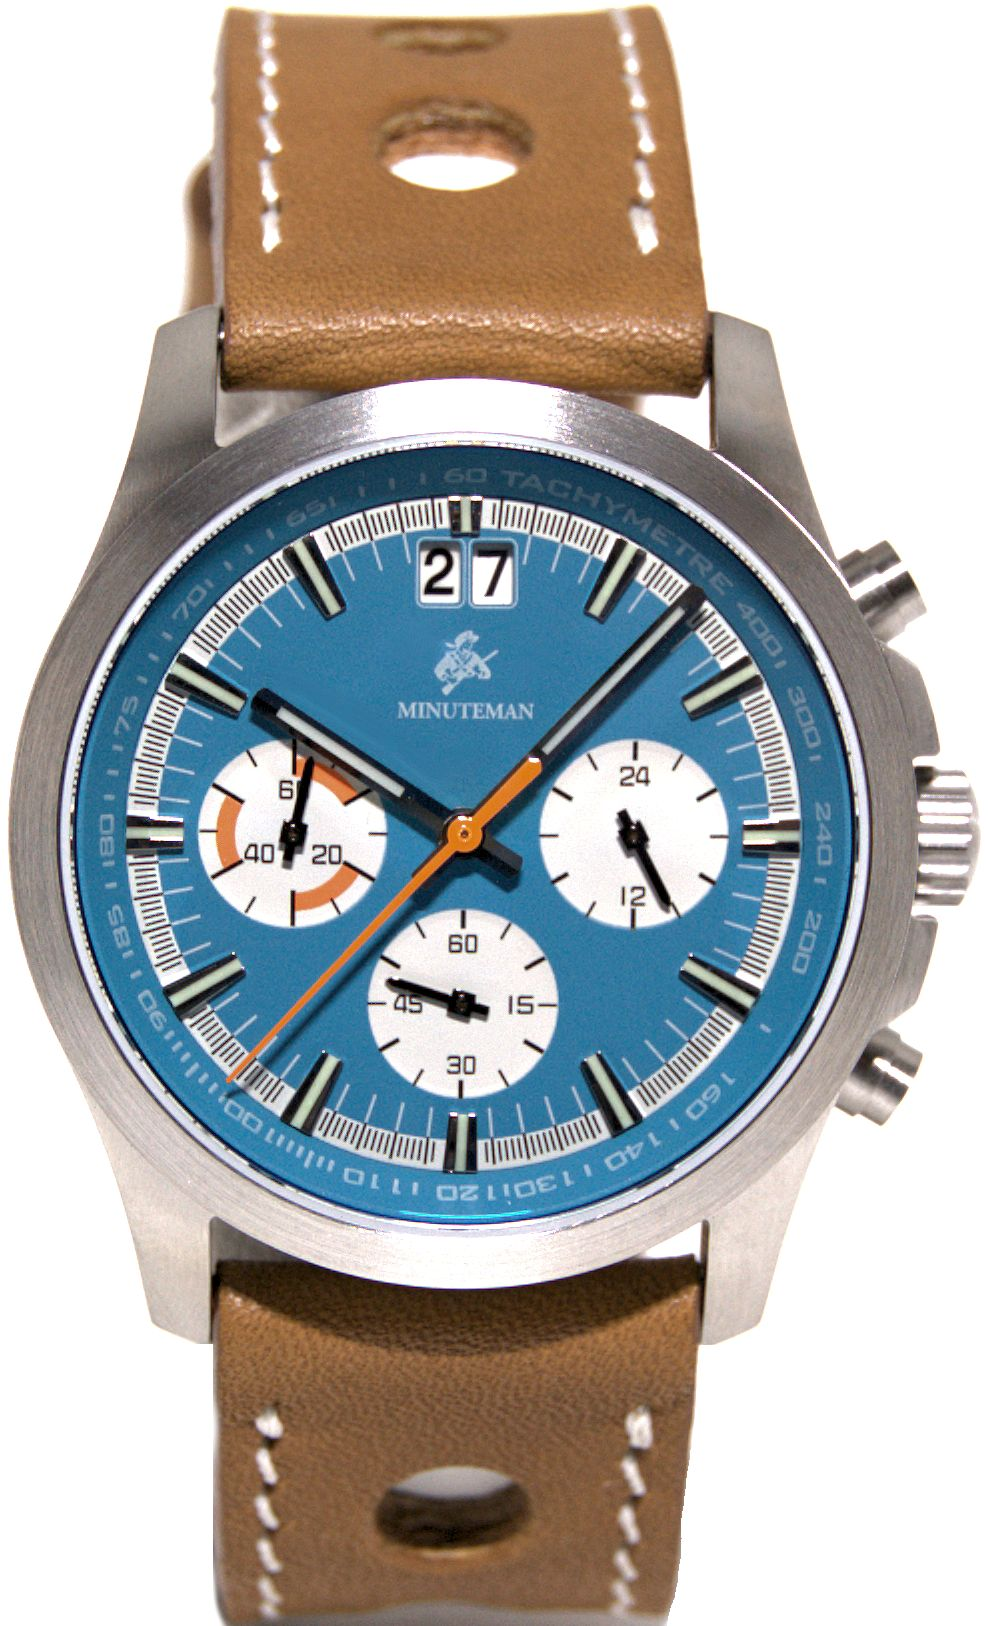 Minuteman Parker Chronograph Watch Brown Leather Strap Brushed  Blue Dial,minutemanwatches,Minuteman,Wrist Watch